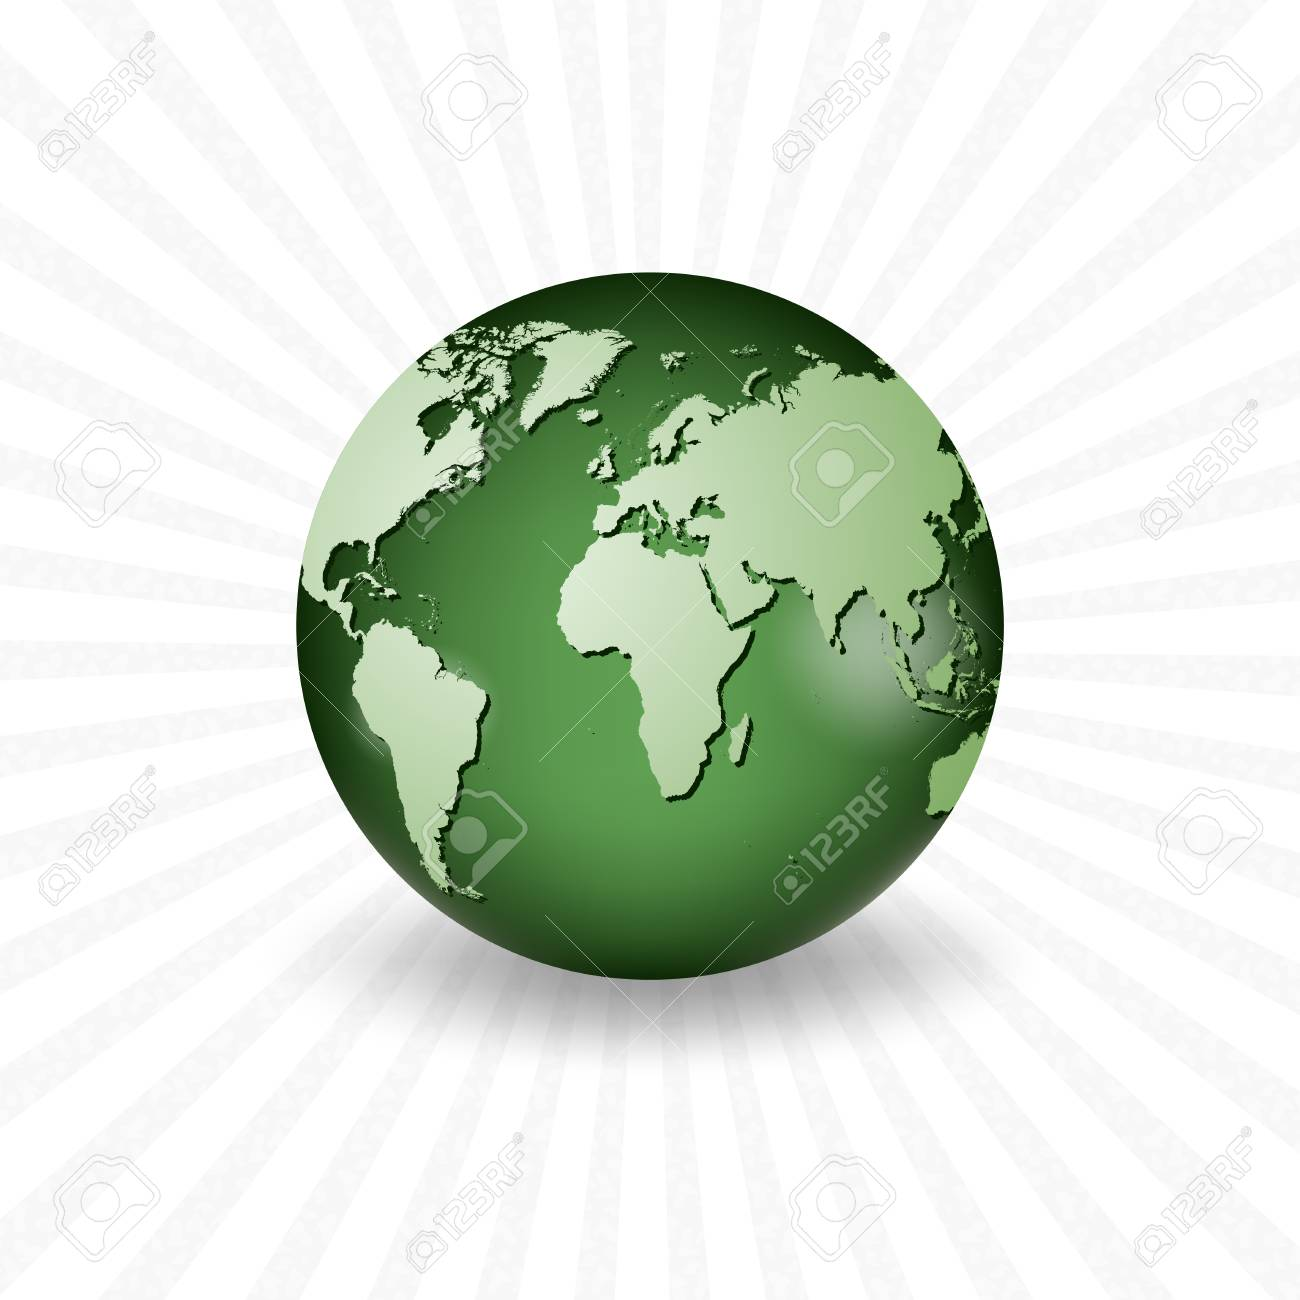 Planet earth with a realistic world map royalty free cliparts planet earth with a realistic world map stock vector 41817678 gumiabroncs Choice Image